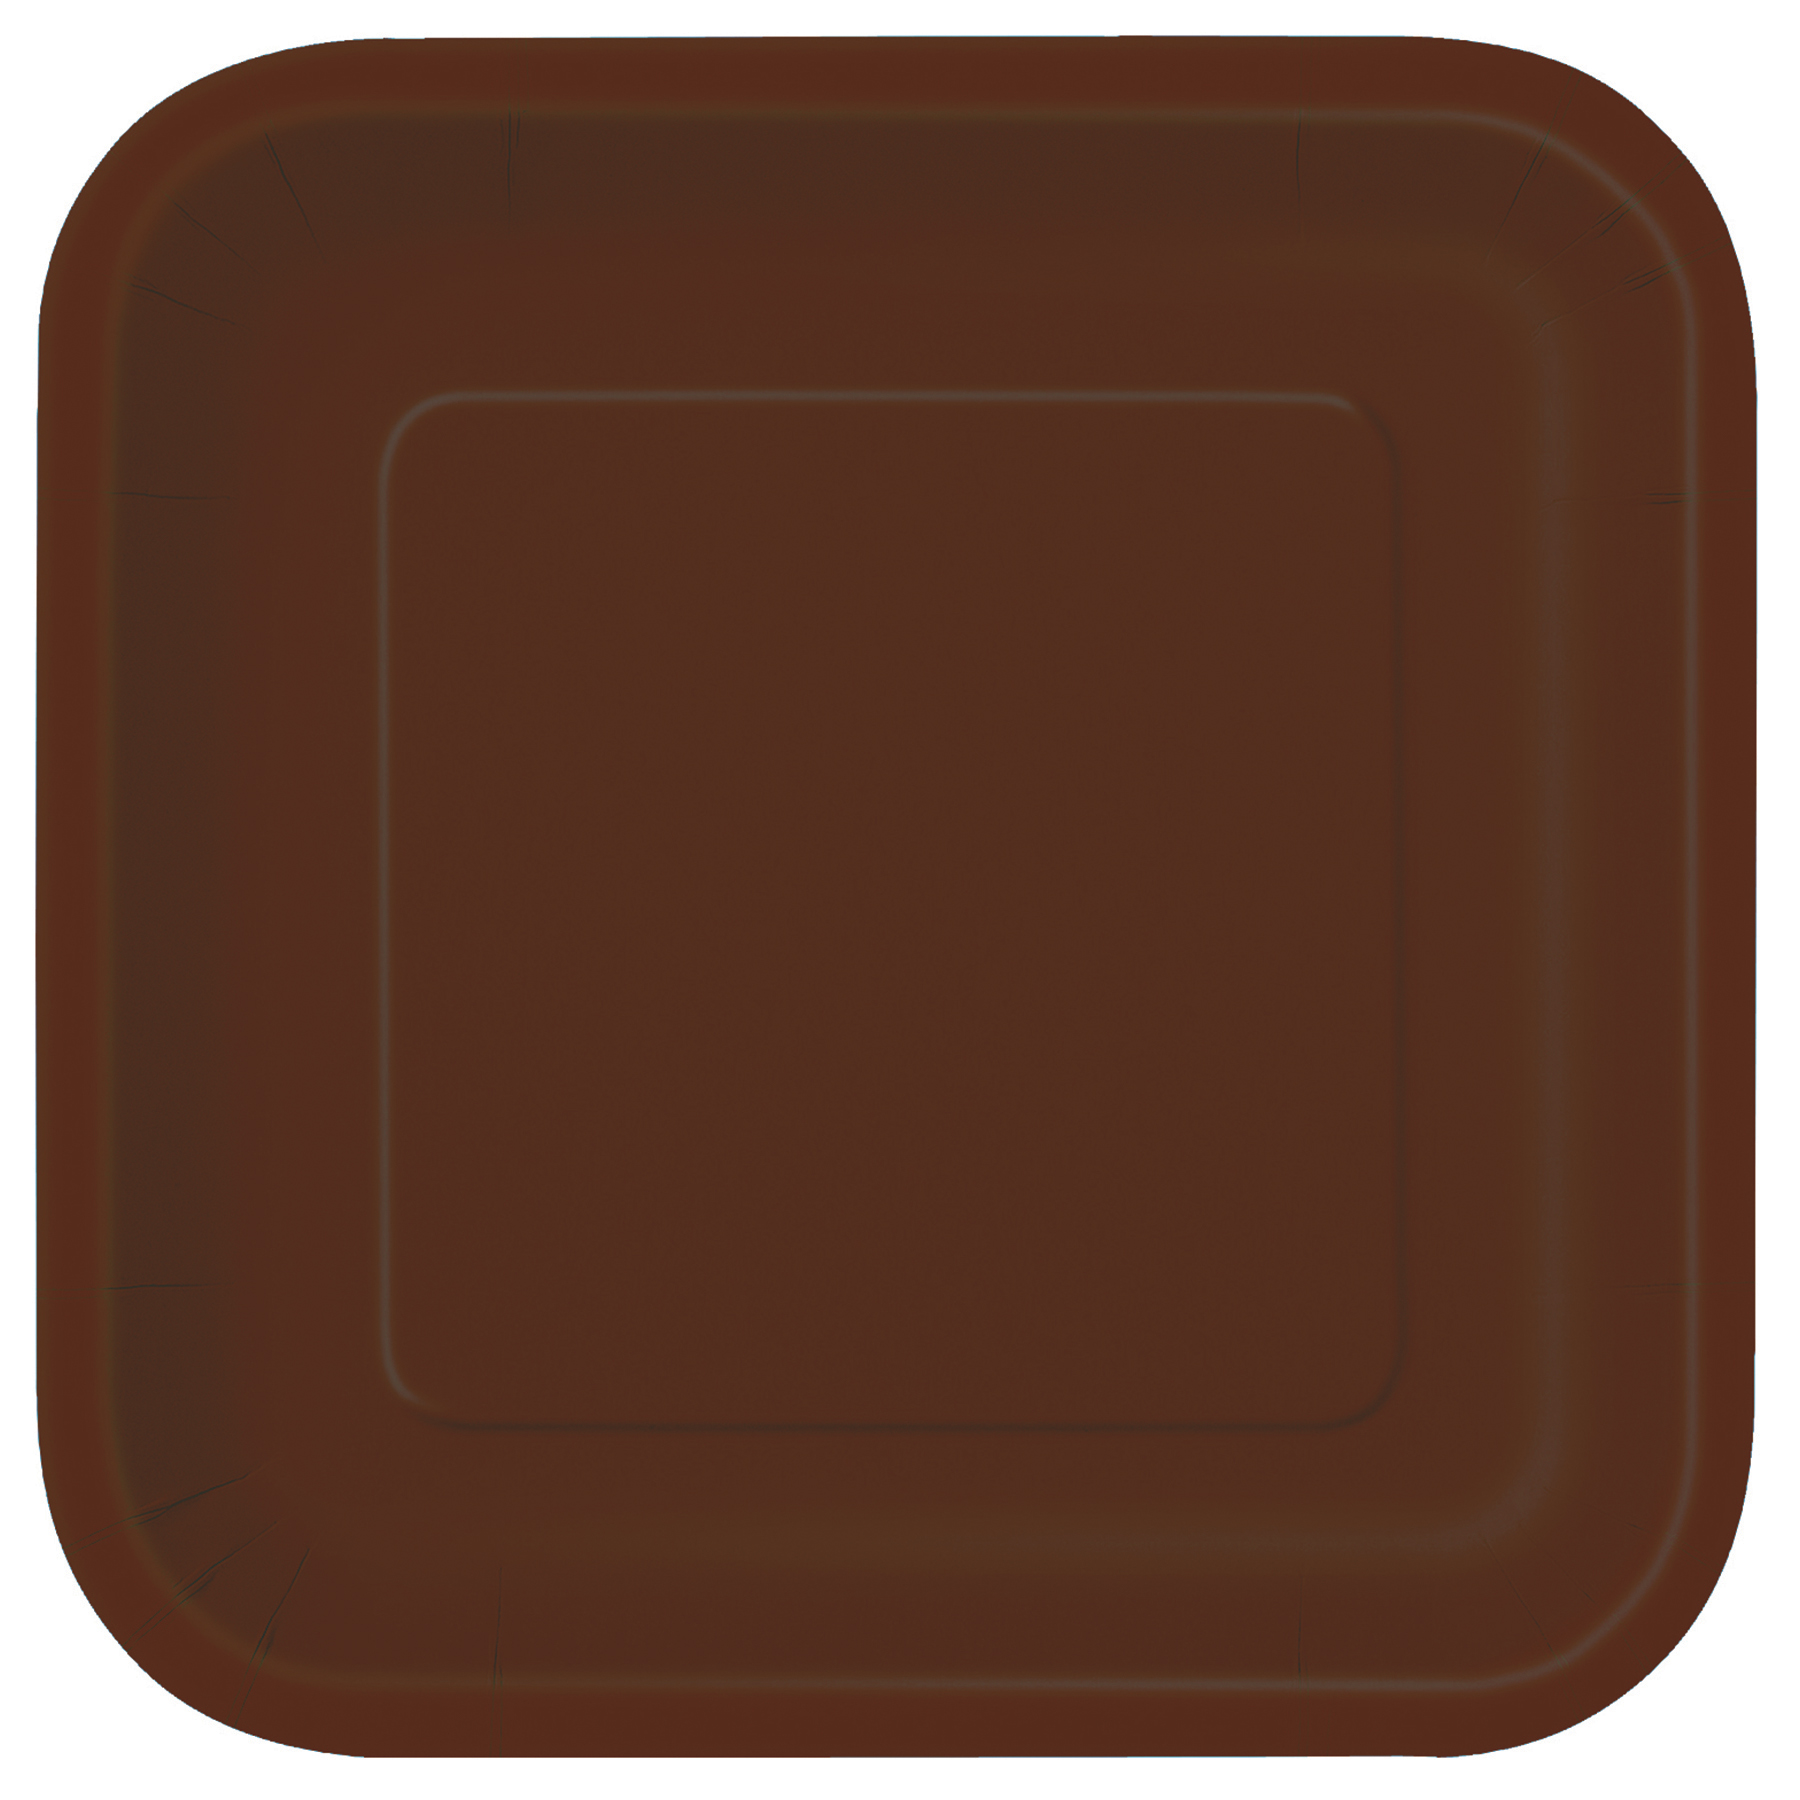 9u201d Square Brown Dinner Plates ... & 9